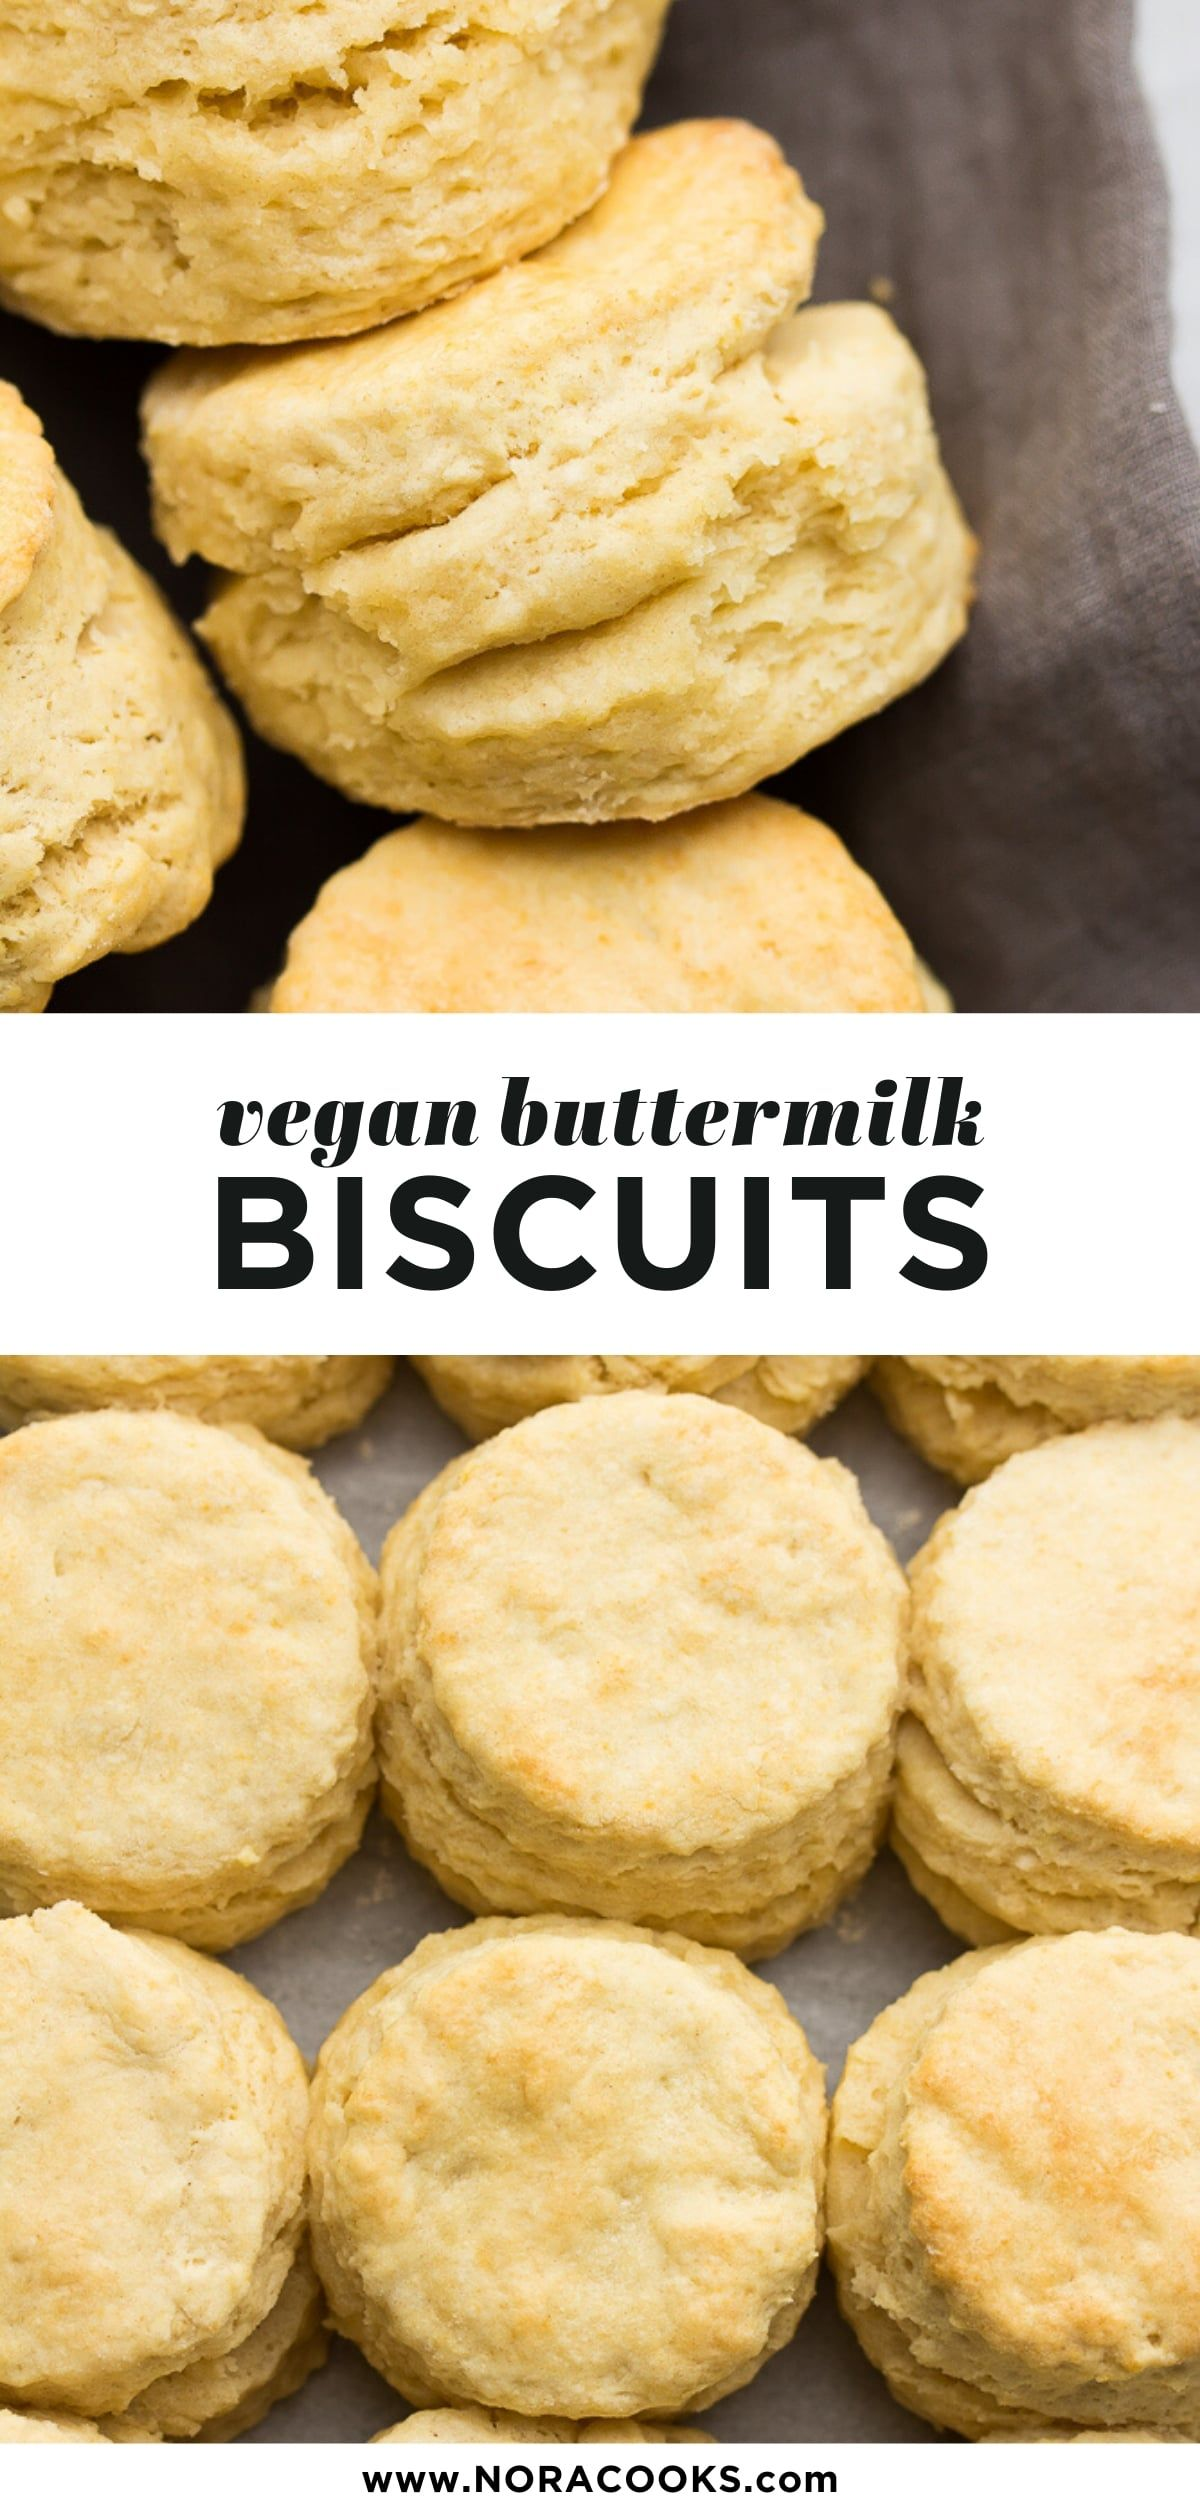 Vegan Buttermilk Biscuits Are Tall Ultra Flakey And Buttery They Have So Many Layers And Are Easy To M In 2020 Buttermilk Biscuits Biscuit Recipe Vegan Recipes Easy